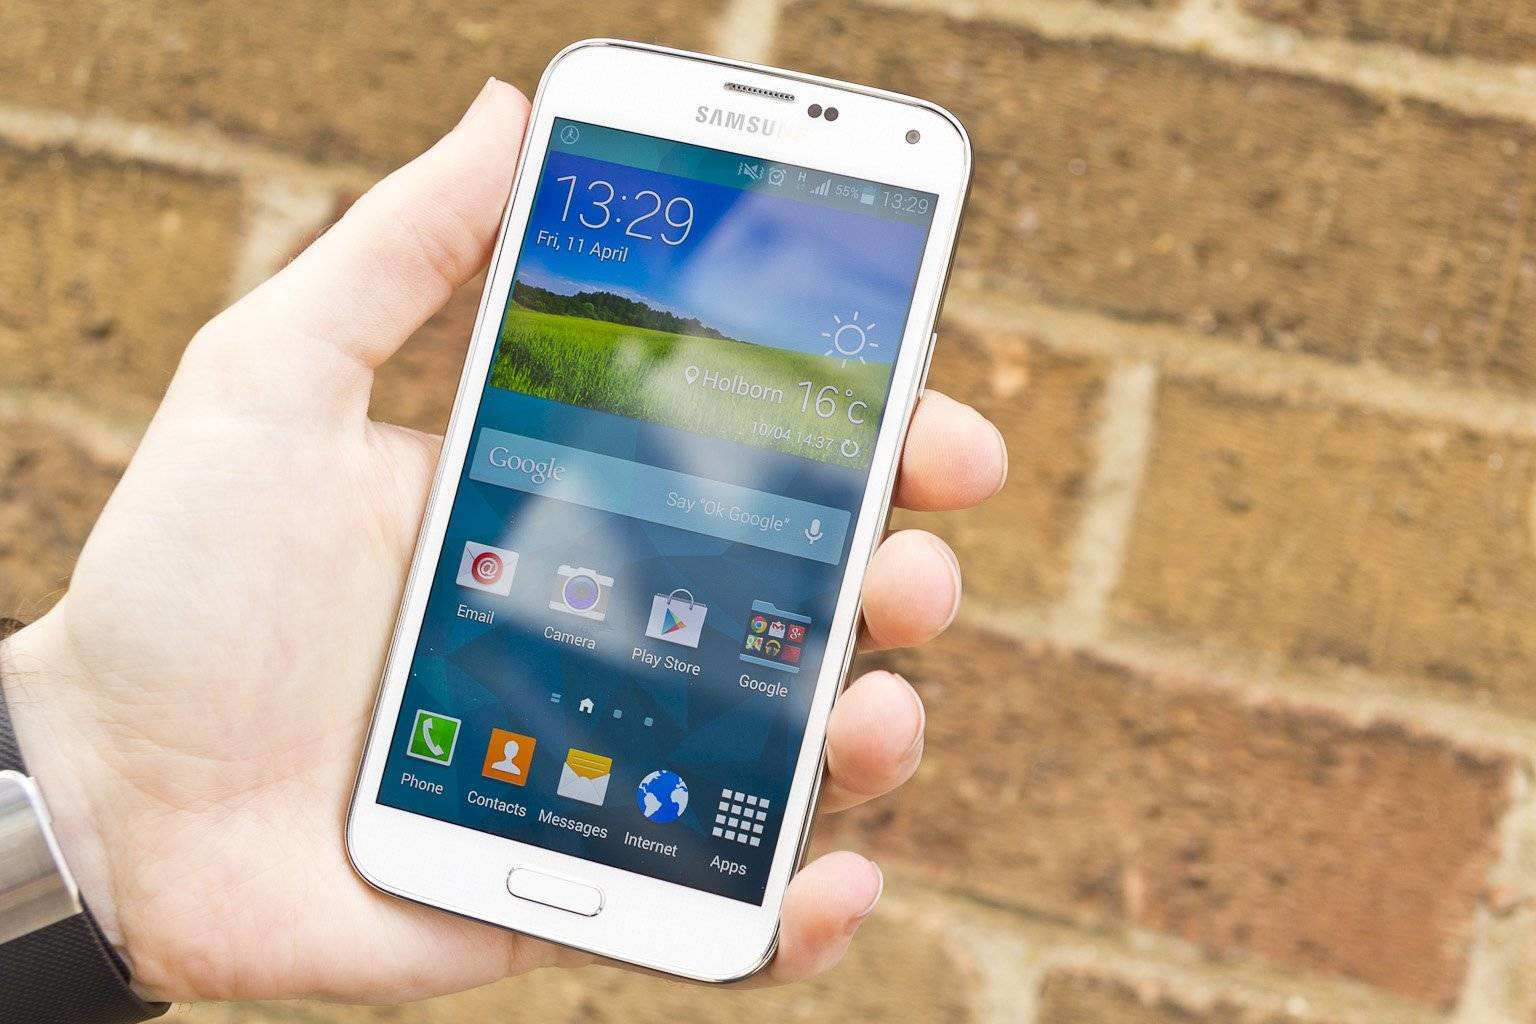 Best phone blocker - Samsung's Android rival wants some respect, finally